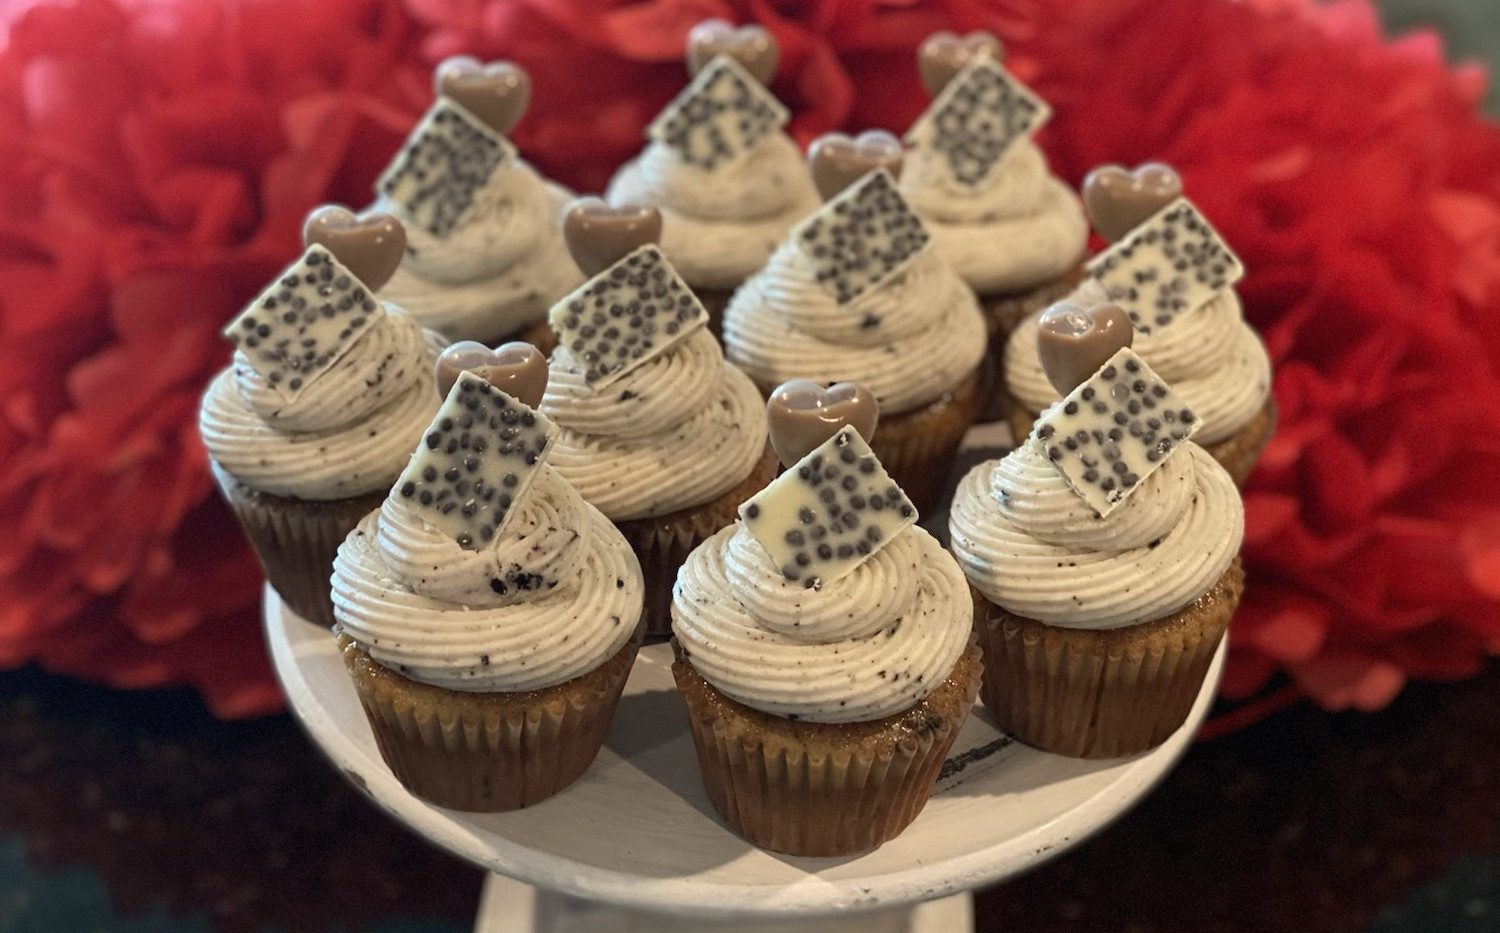 Alcohol Cupcakes (21 years old & up)